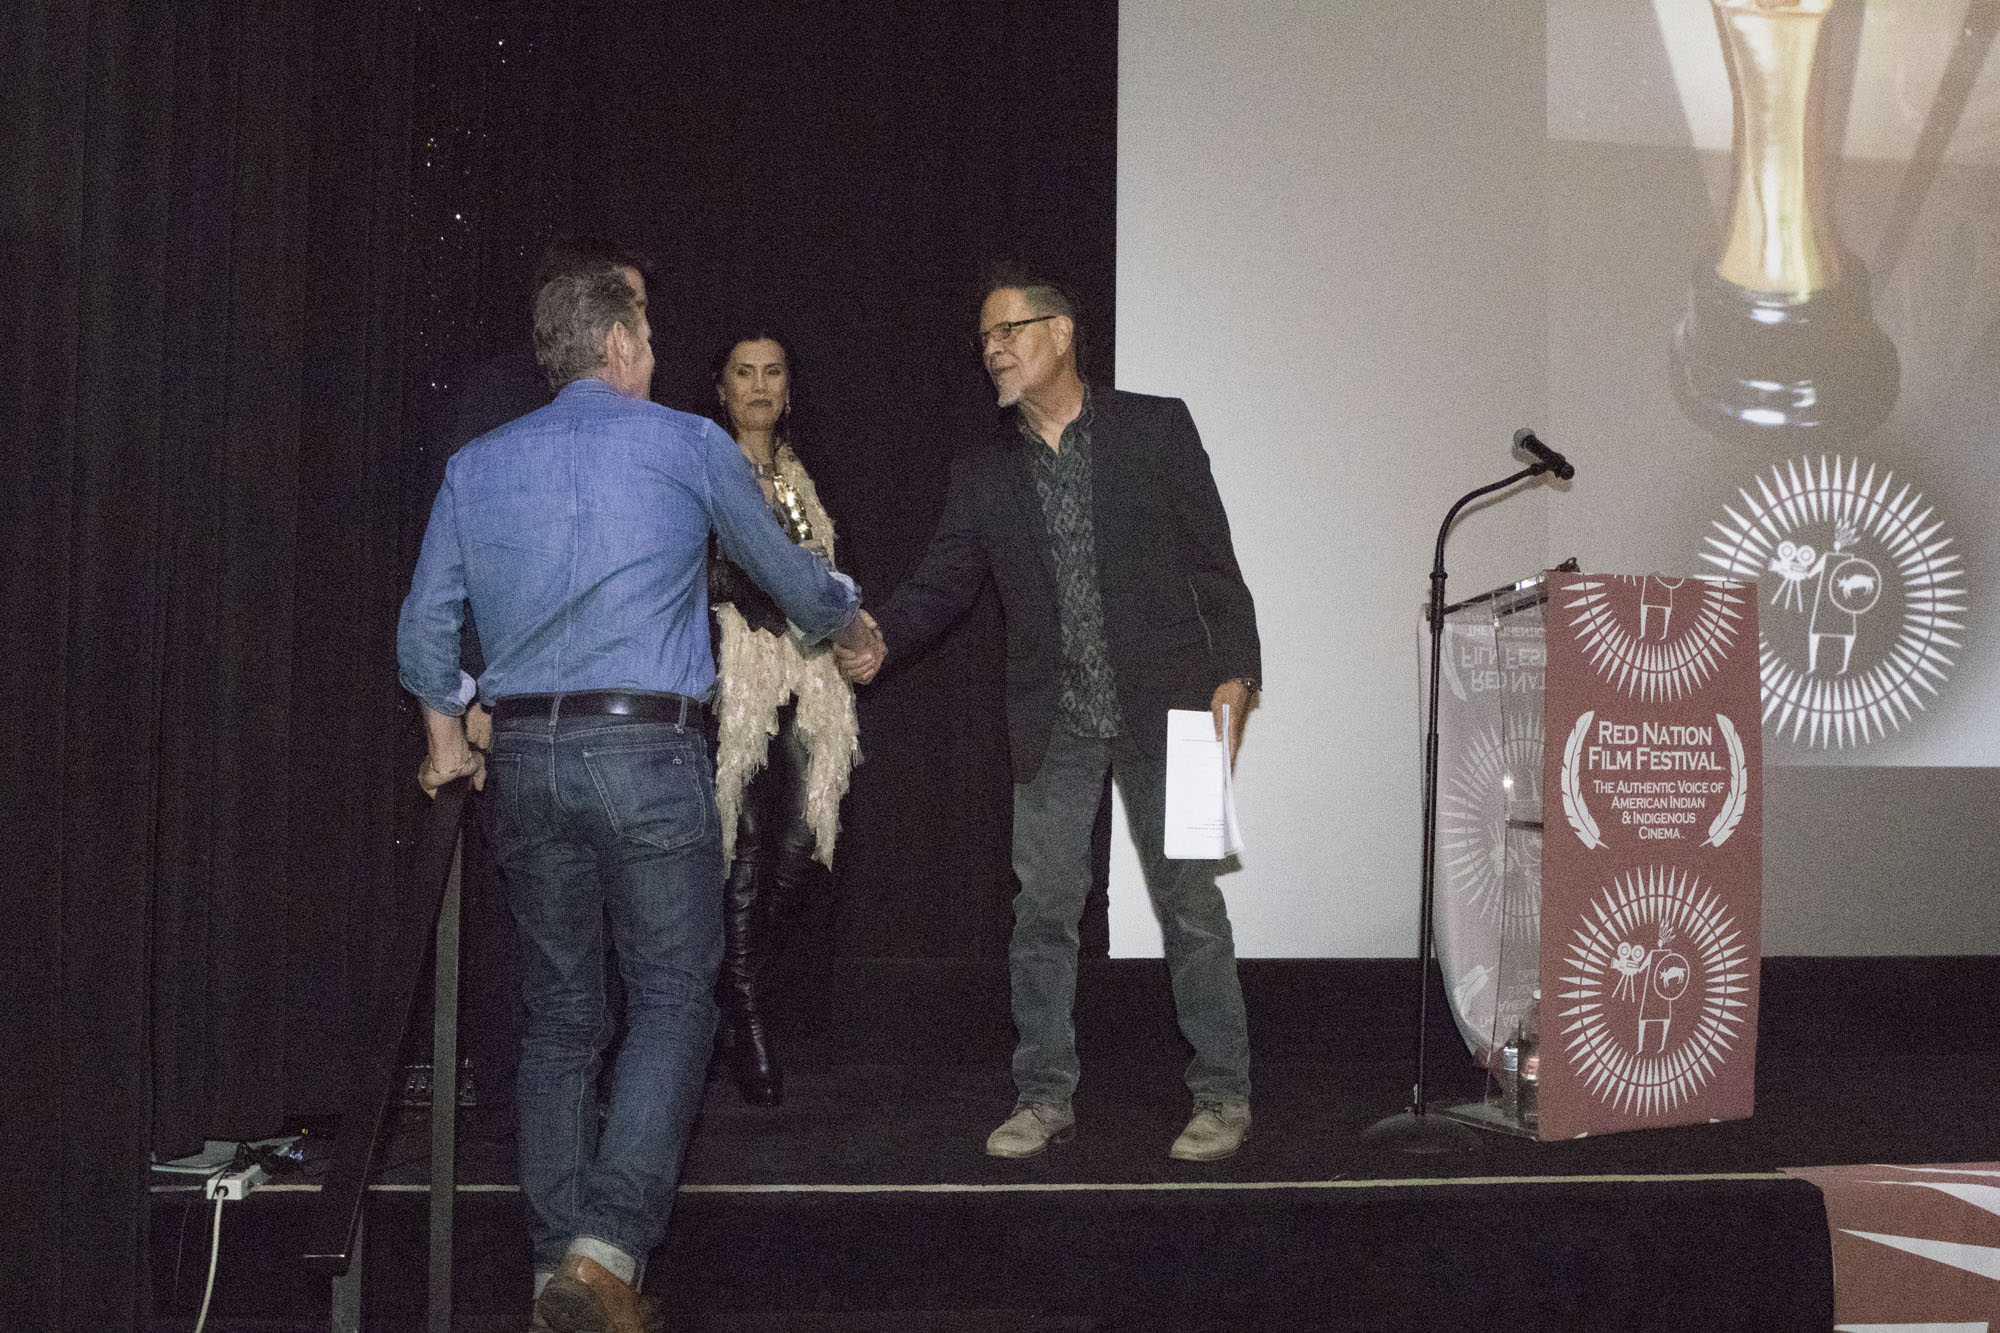 Red Nation Film Festival Awards Night on November 18, 2017 at Beverly Hills, Calif. Photography by Jesse Watrous Photography and Media Photographer: Jesse M. Watrous